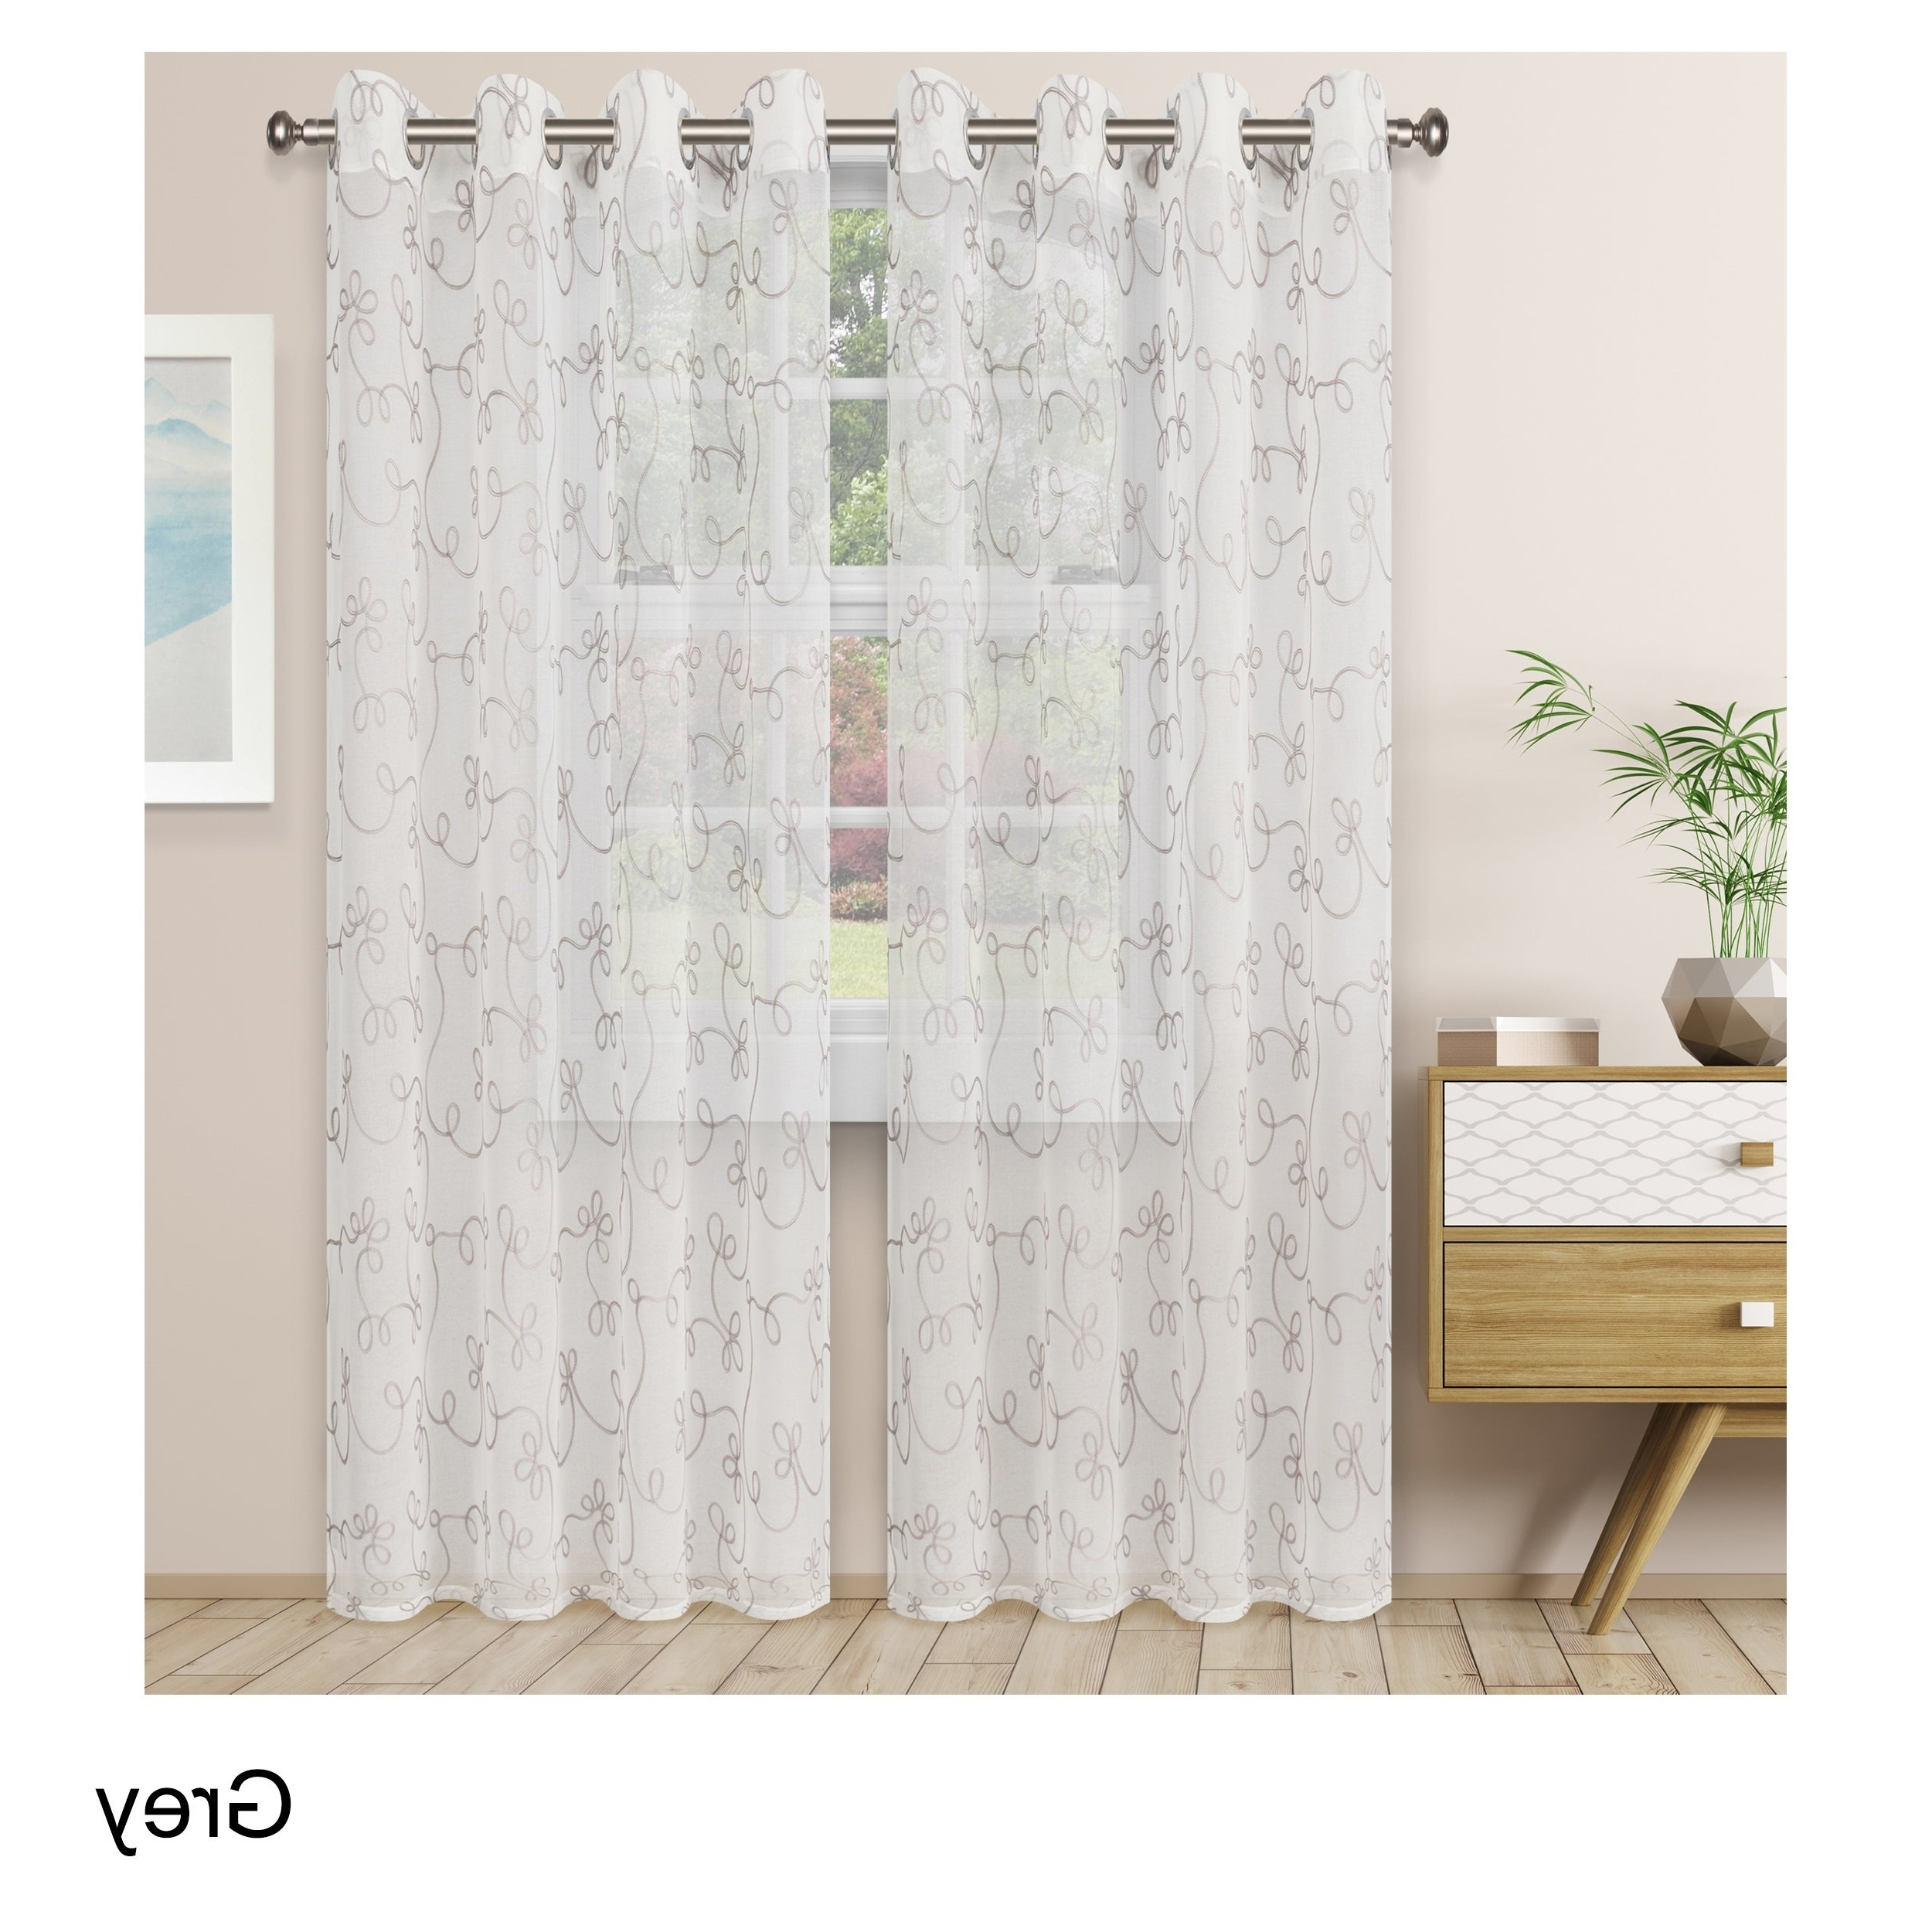 Well Liked Overseas Leaf Swirl Embroidered Curtain Panel Pairs With Regard To Superior Embroidered Scroll Sheer Grommet Curtain Panel Pair (View 3 of 21)